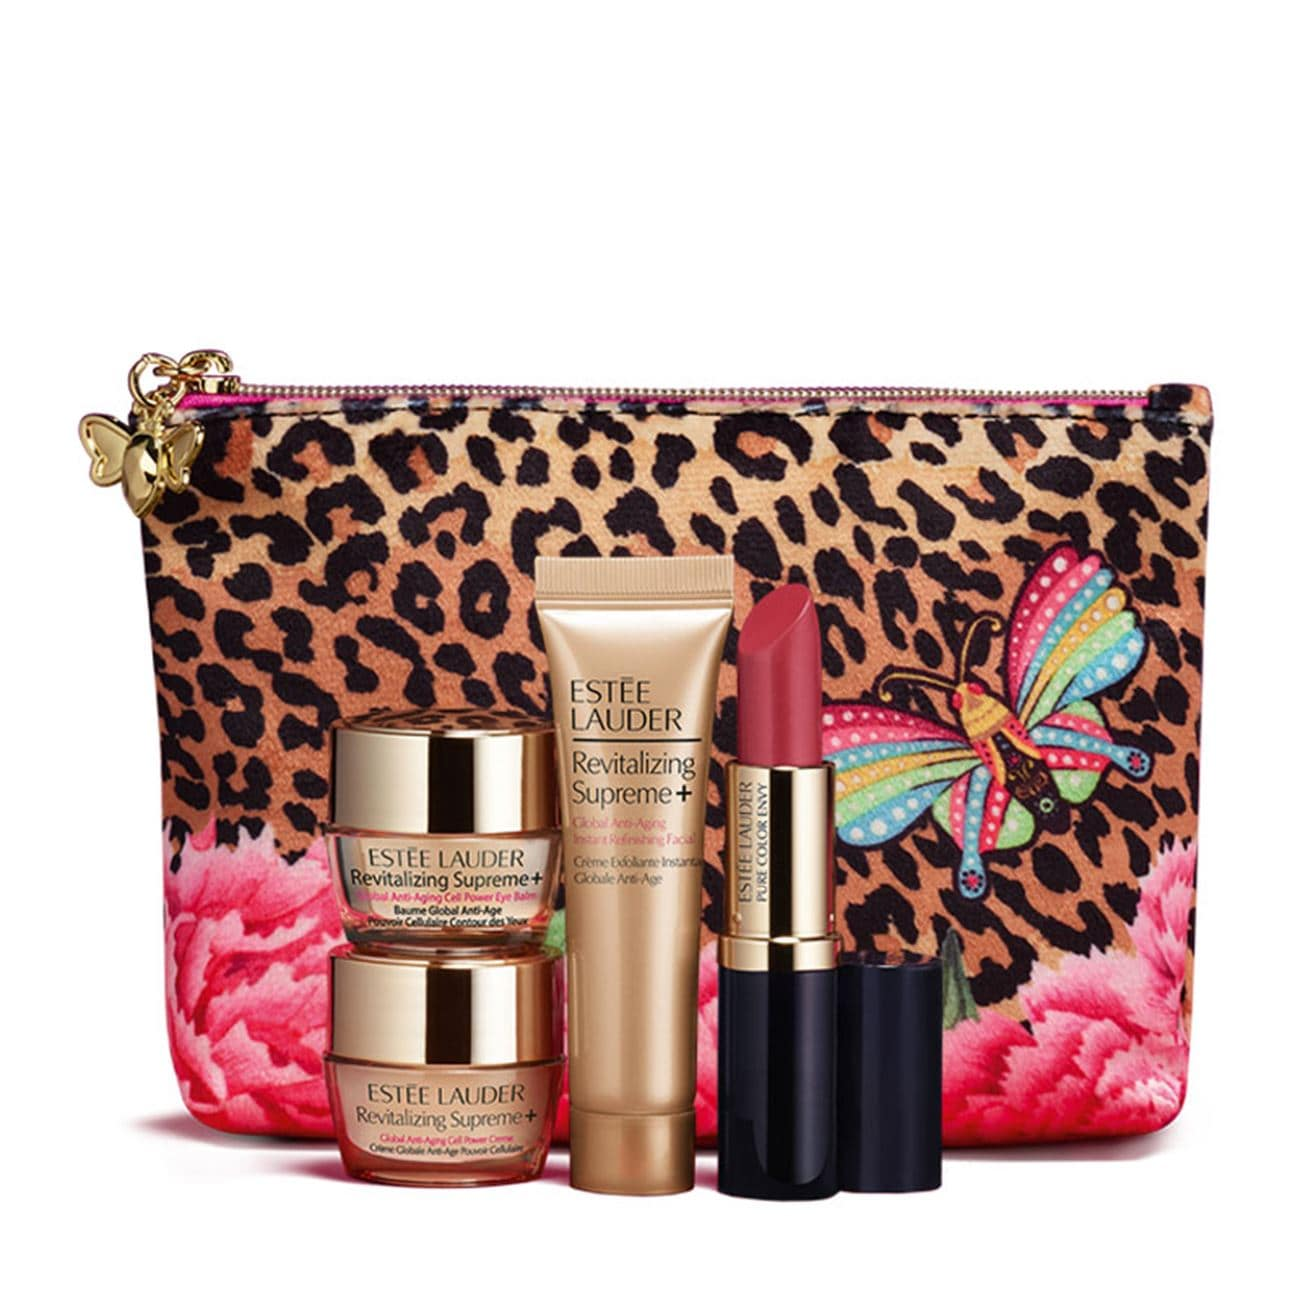 Estee Lauder Natural Skin & Full Lip - Free Gift